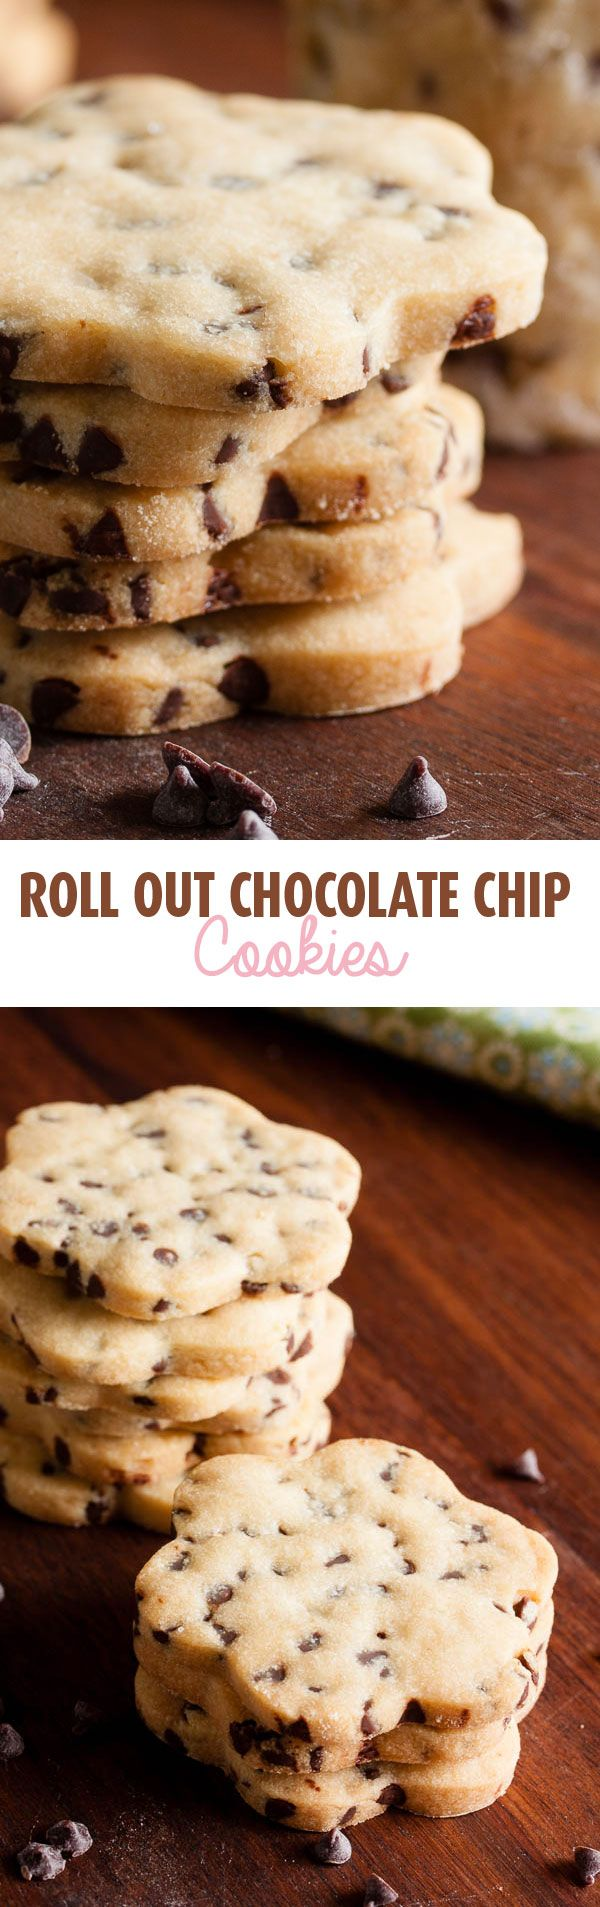 These roll-out chocolate chip cookies are soft and slightly crumbly, like a shortbread studded with tiny chocolate chips. Great cookie cutter cookie!